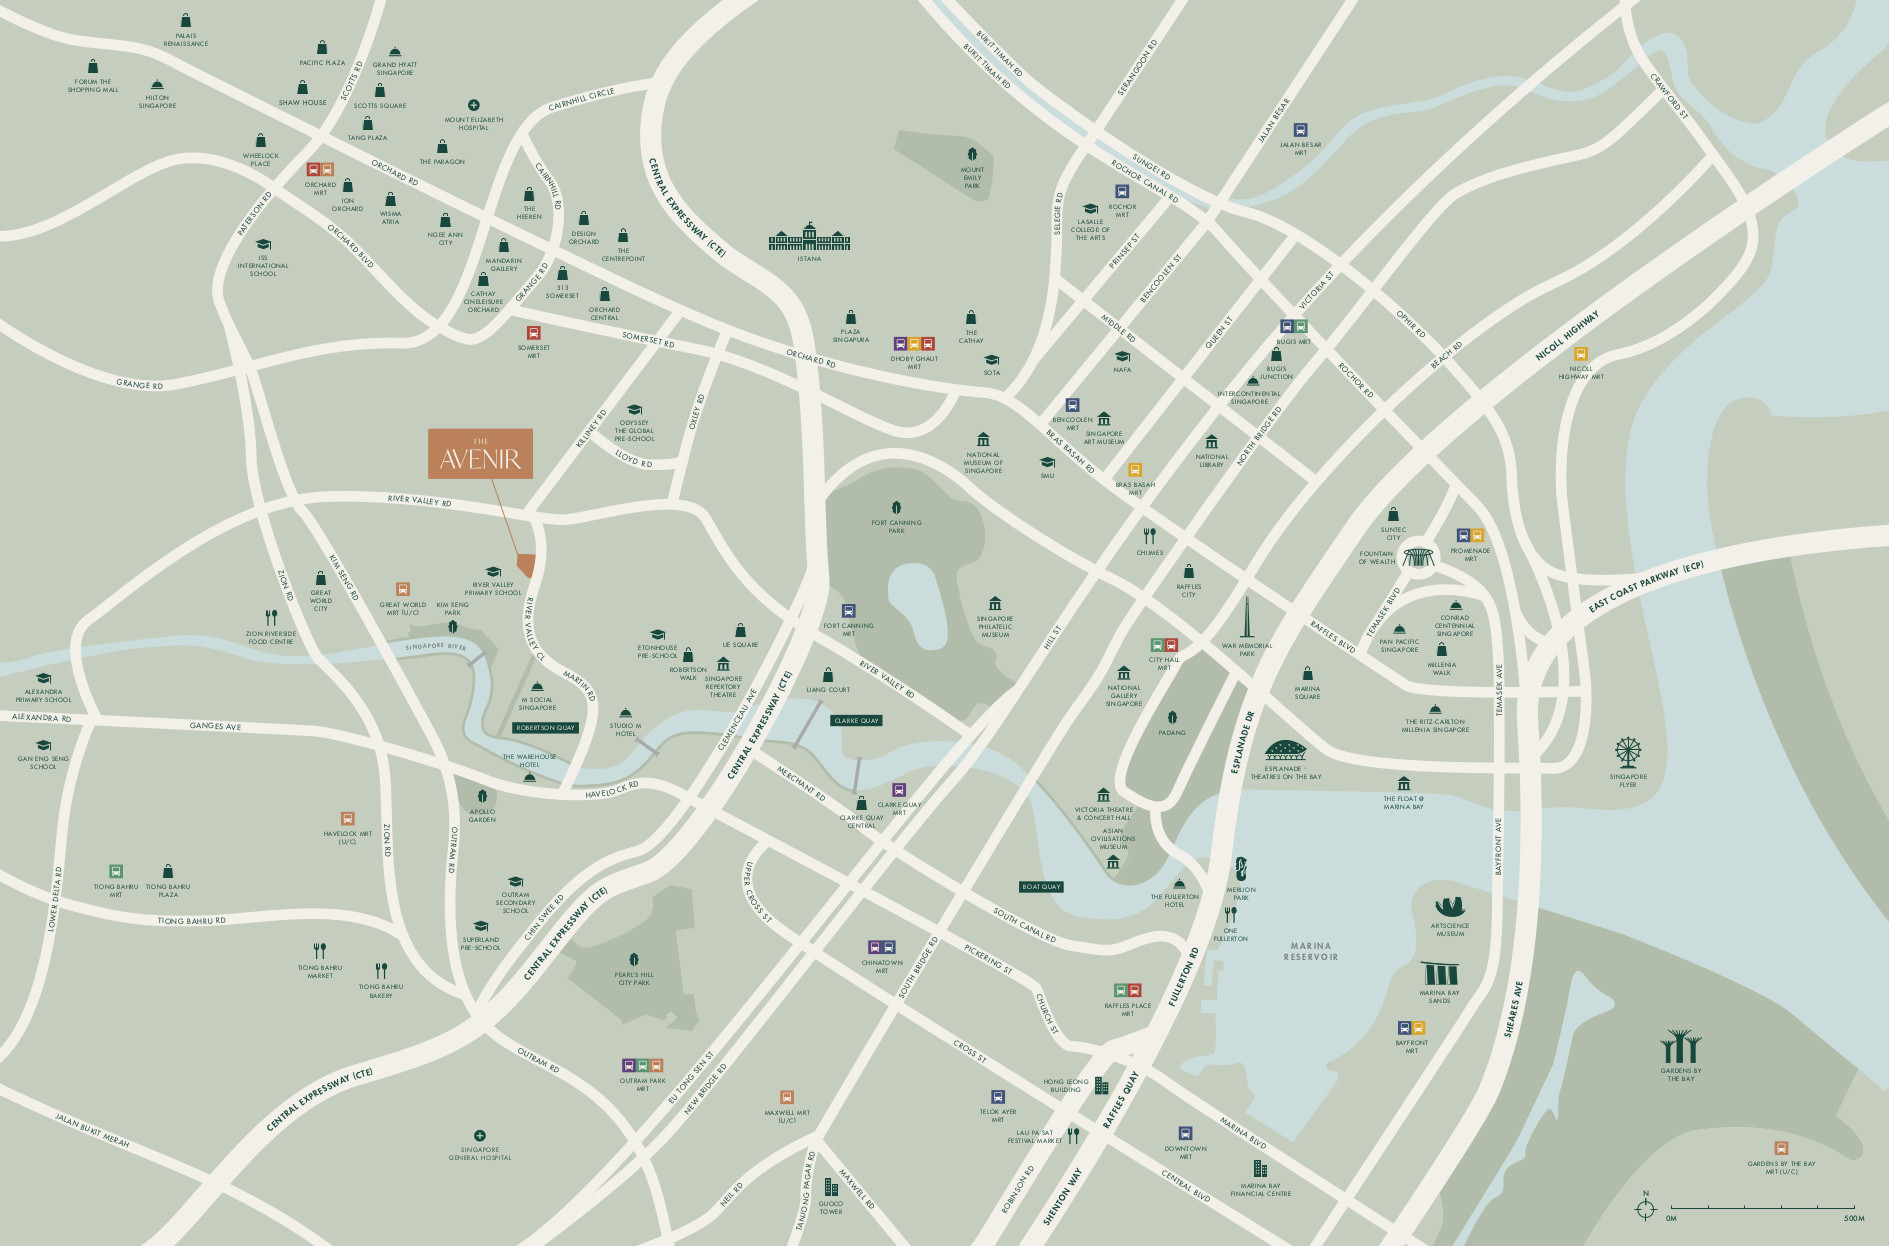 The Avenir Location Map . Neighbourhood & Amenities